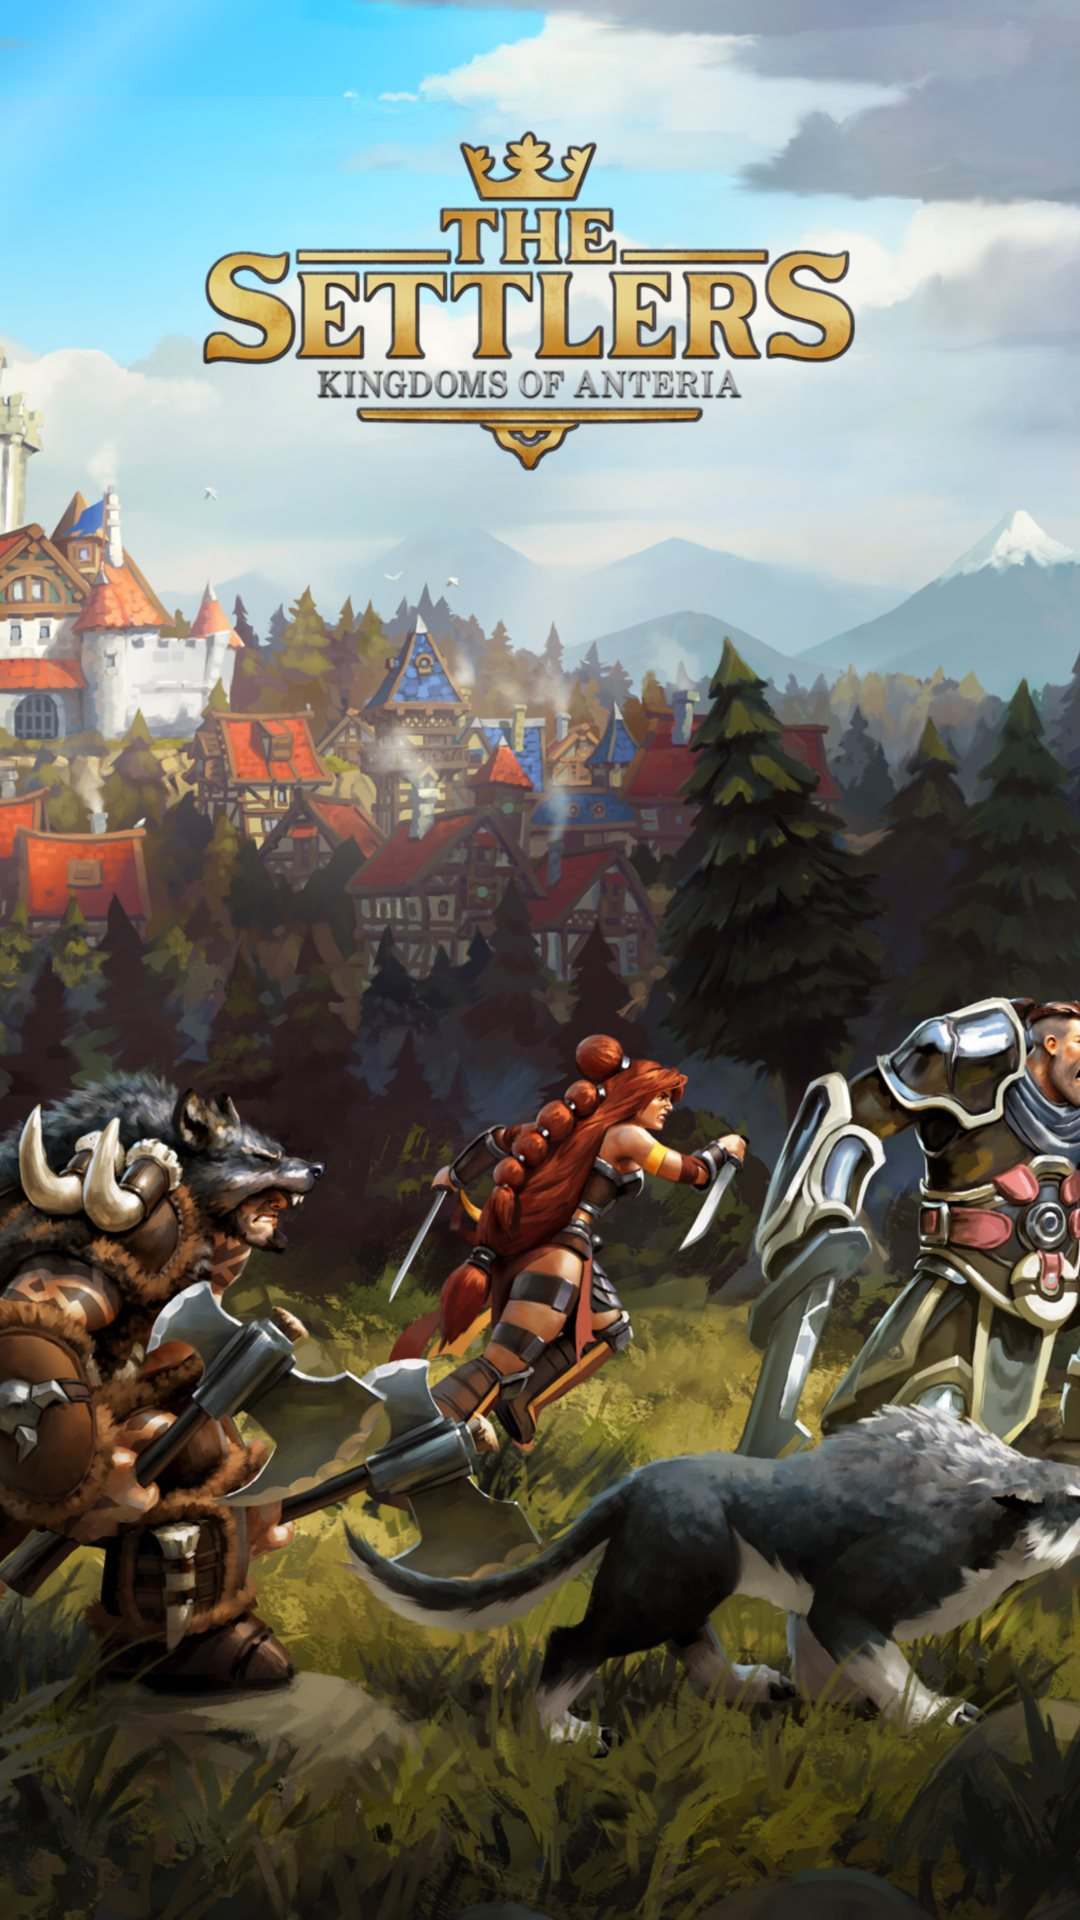 The Settlers Kingdoms of Anteria GameSpot - the settlers kingdoms of anteria wallpapers